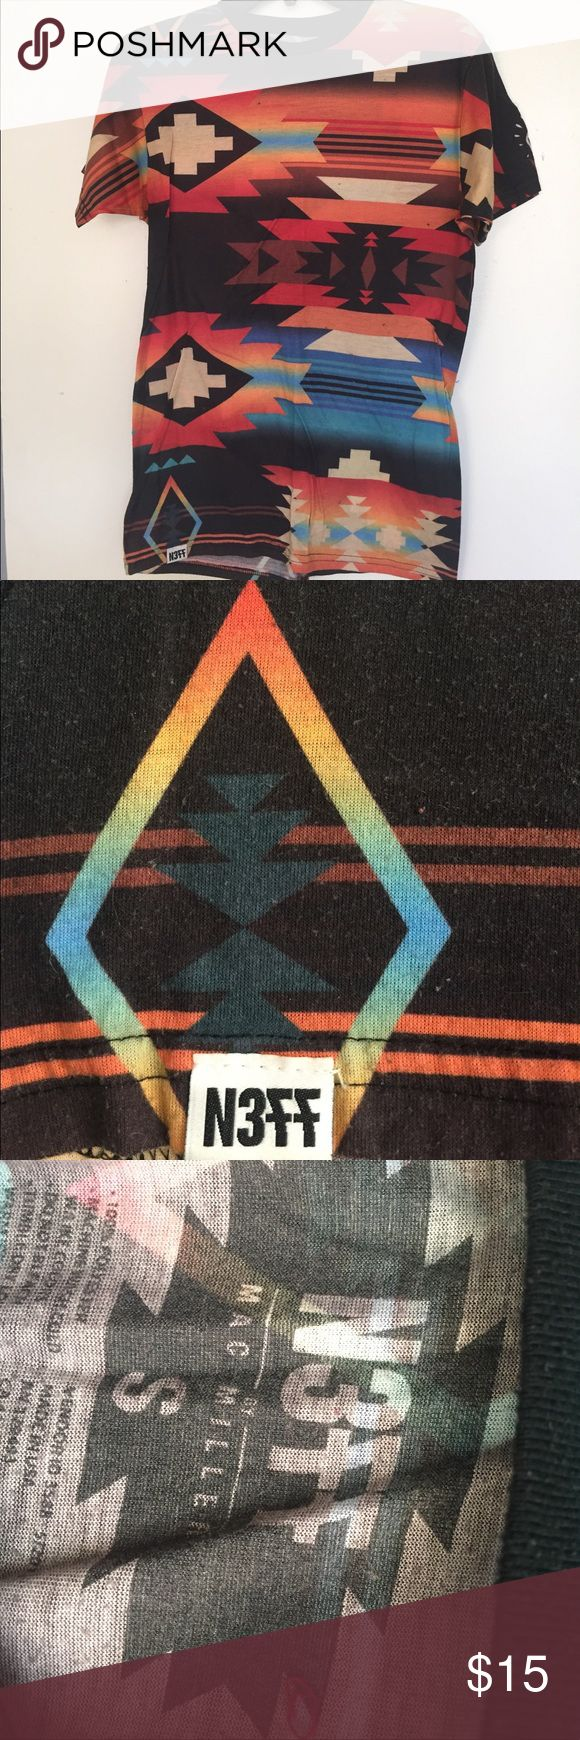 Neff by Mac Miller Men's Tee Mens t shirt size small, from NEFF's Mac Miller collection. Great condition, a little bit of pilling but that's just how the material ages. Overall, an awesome top from a retired collection Neff Shirts Tees - Short Sleeve